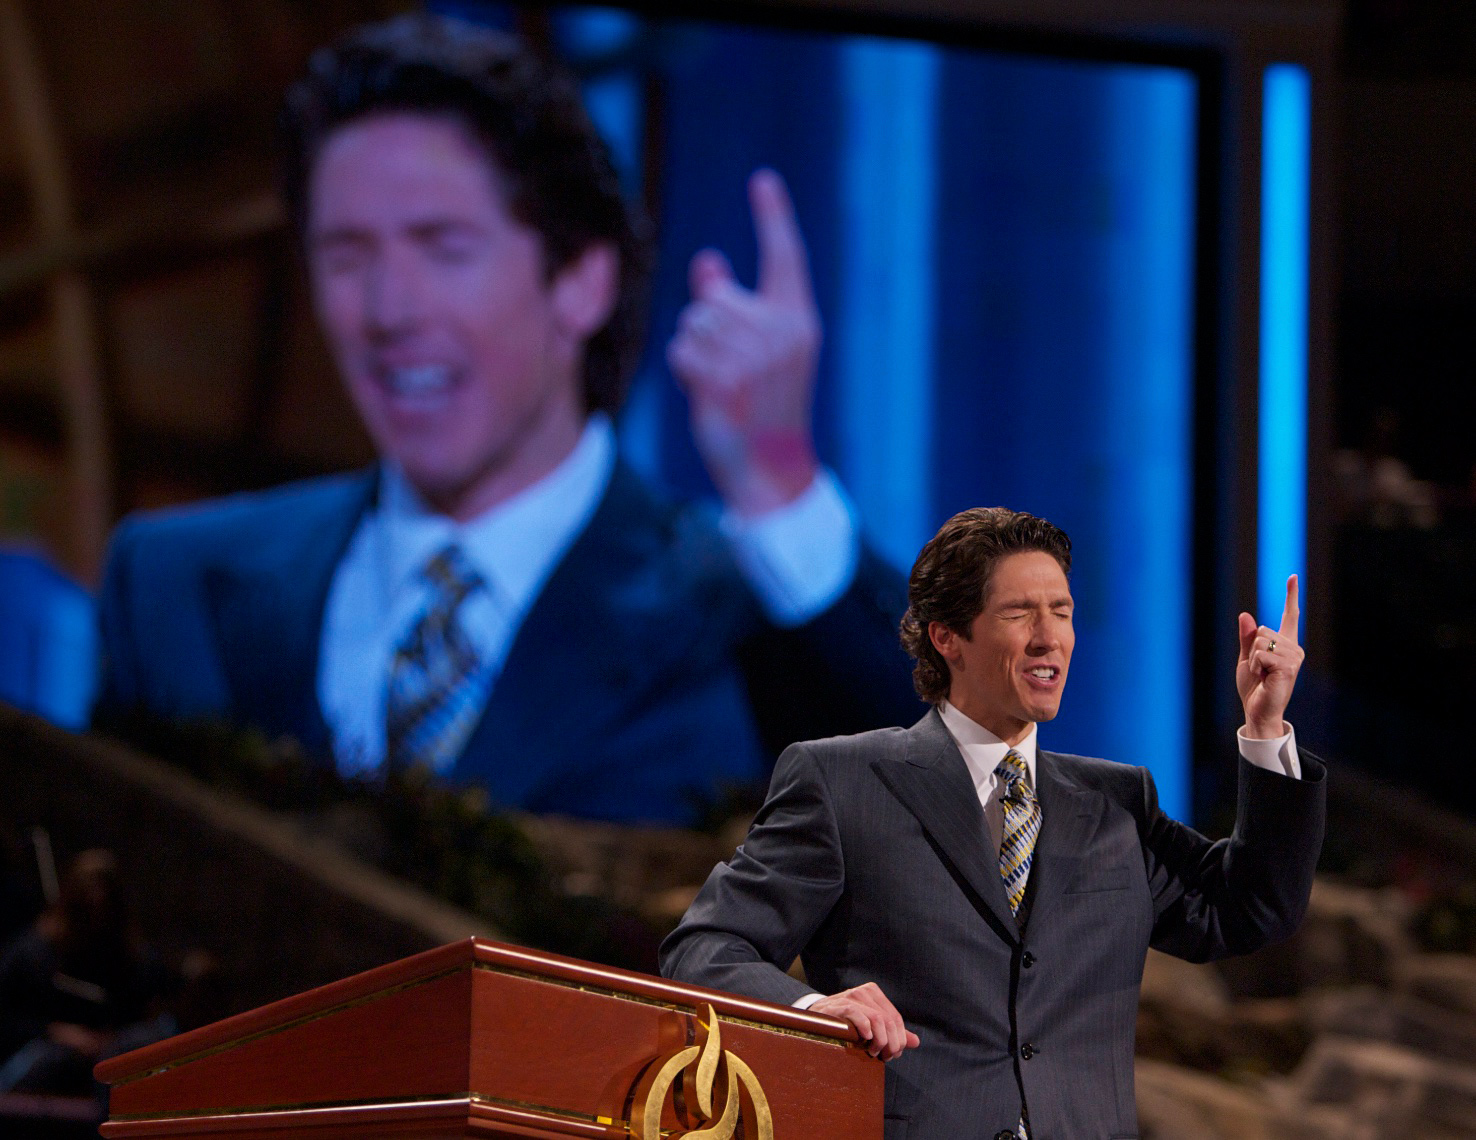 Joel Osteen, Lakewood Church, Houston